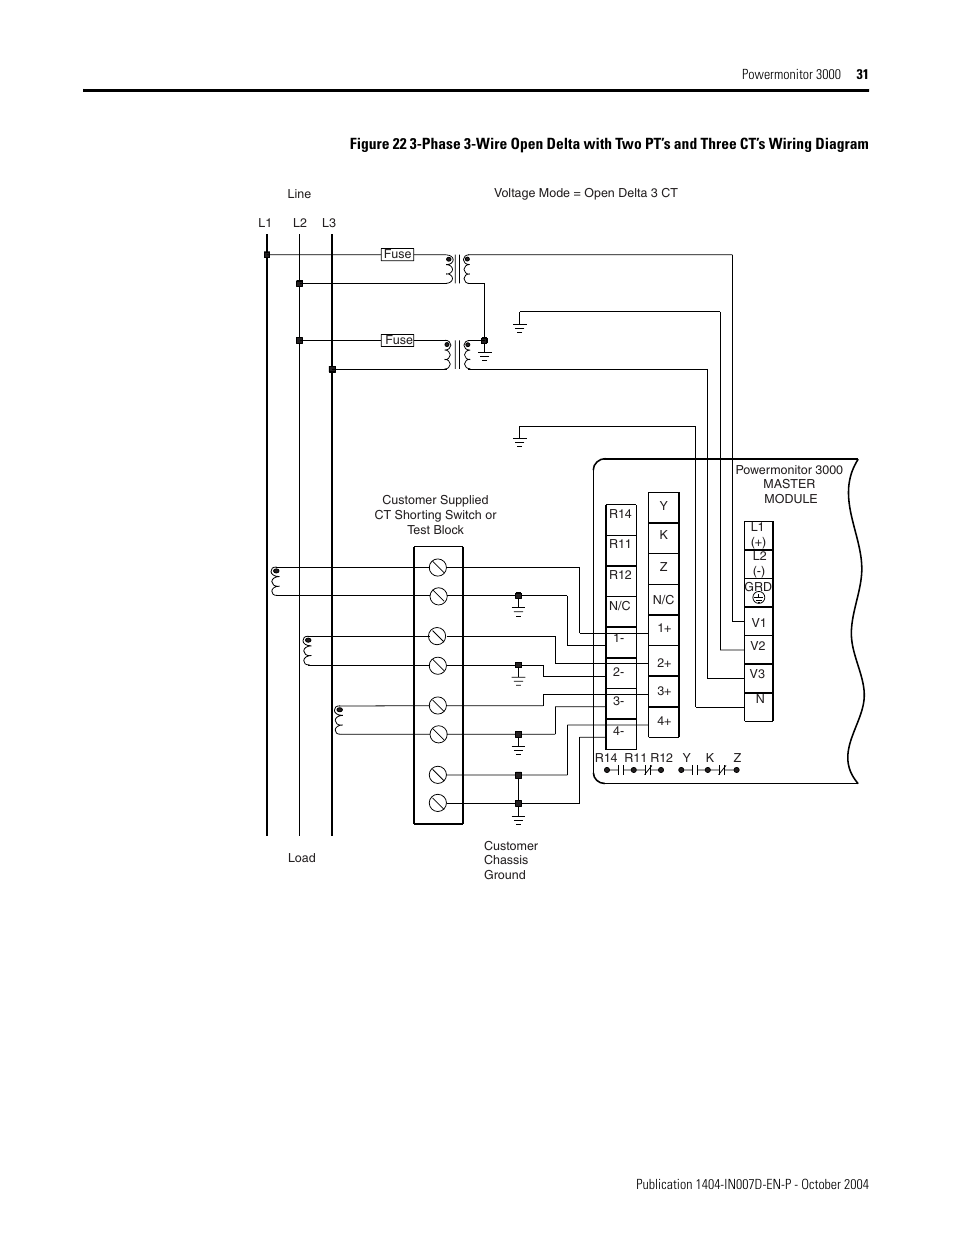 Rockwell Automation 1404 M4 M5 M6 M8 Powermonitor 3000 Installation Yamaha L2 Wiring Diagram Instructions Prior To Firmware Rev 30 User Manual Page 31 66